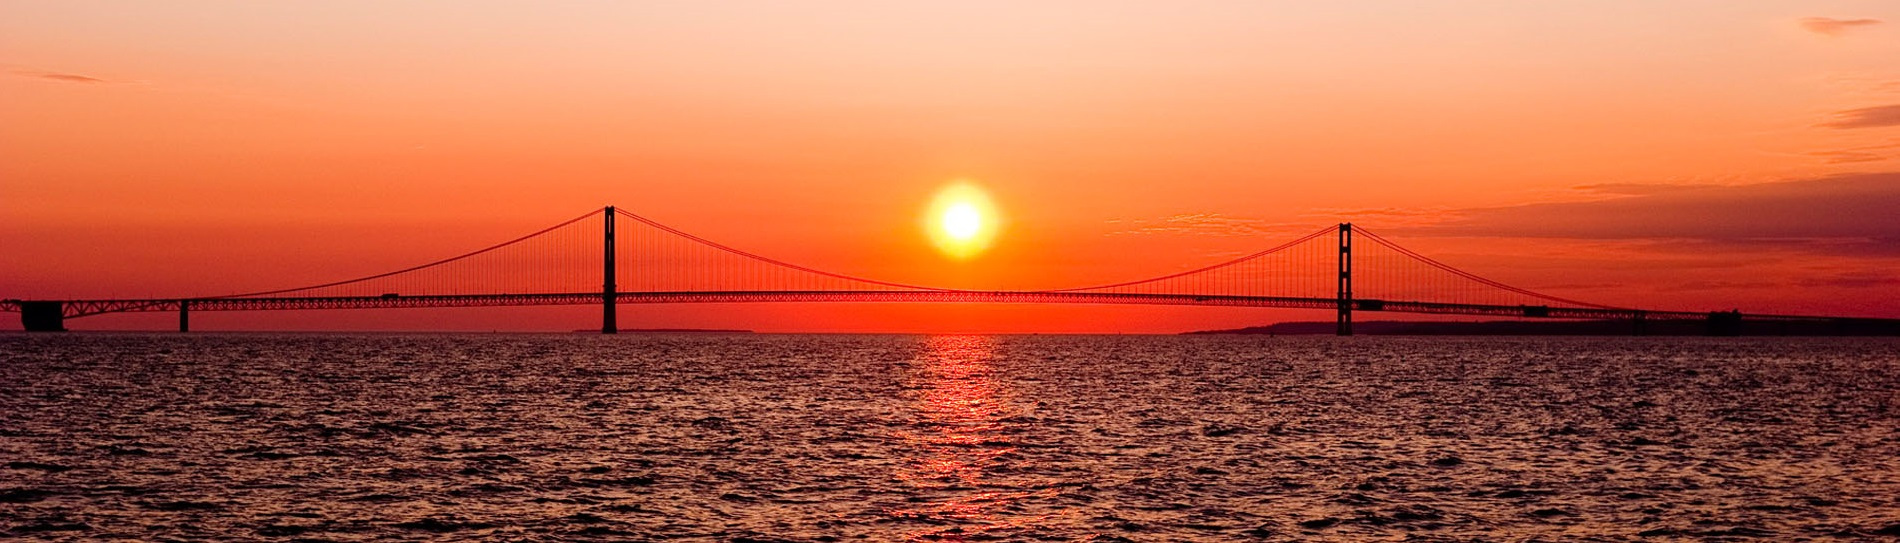 Mackinac Bridge, Sunset, Scenic Image